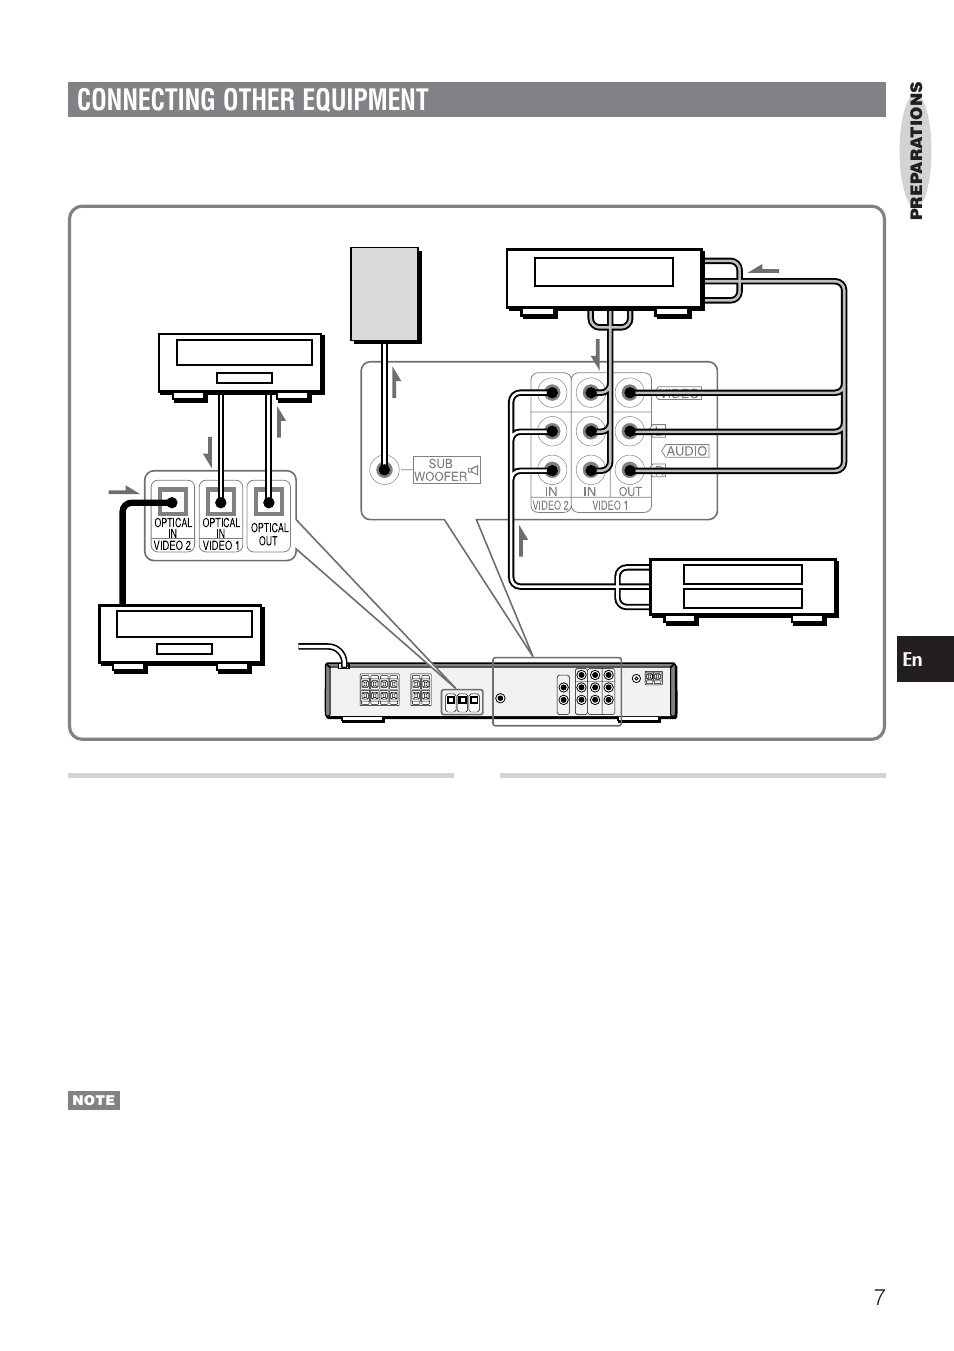 Connecting Other Equipment En Audio Video 1 And Jacks Phone Jack Wiring Diagram In Addition Telephone Color 2 Aiwa Ht Dv90 User Manual Page 7 42